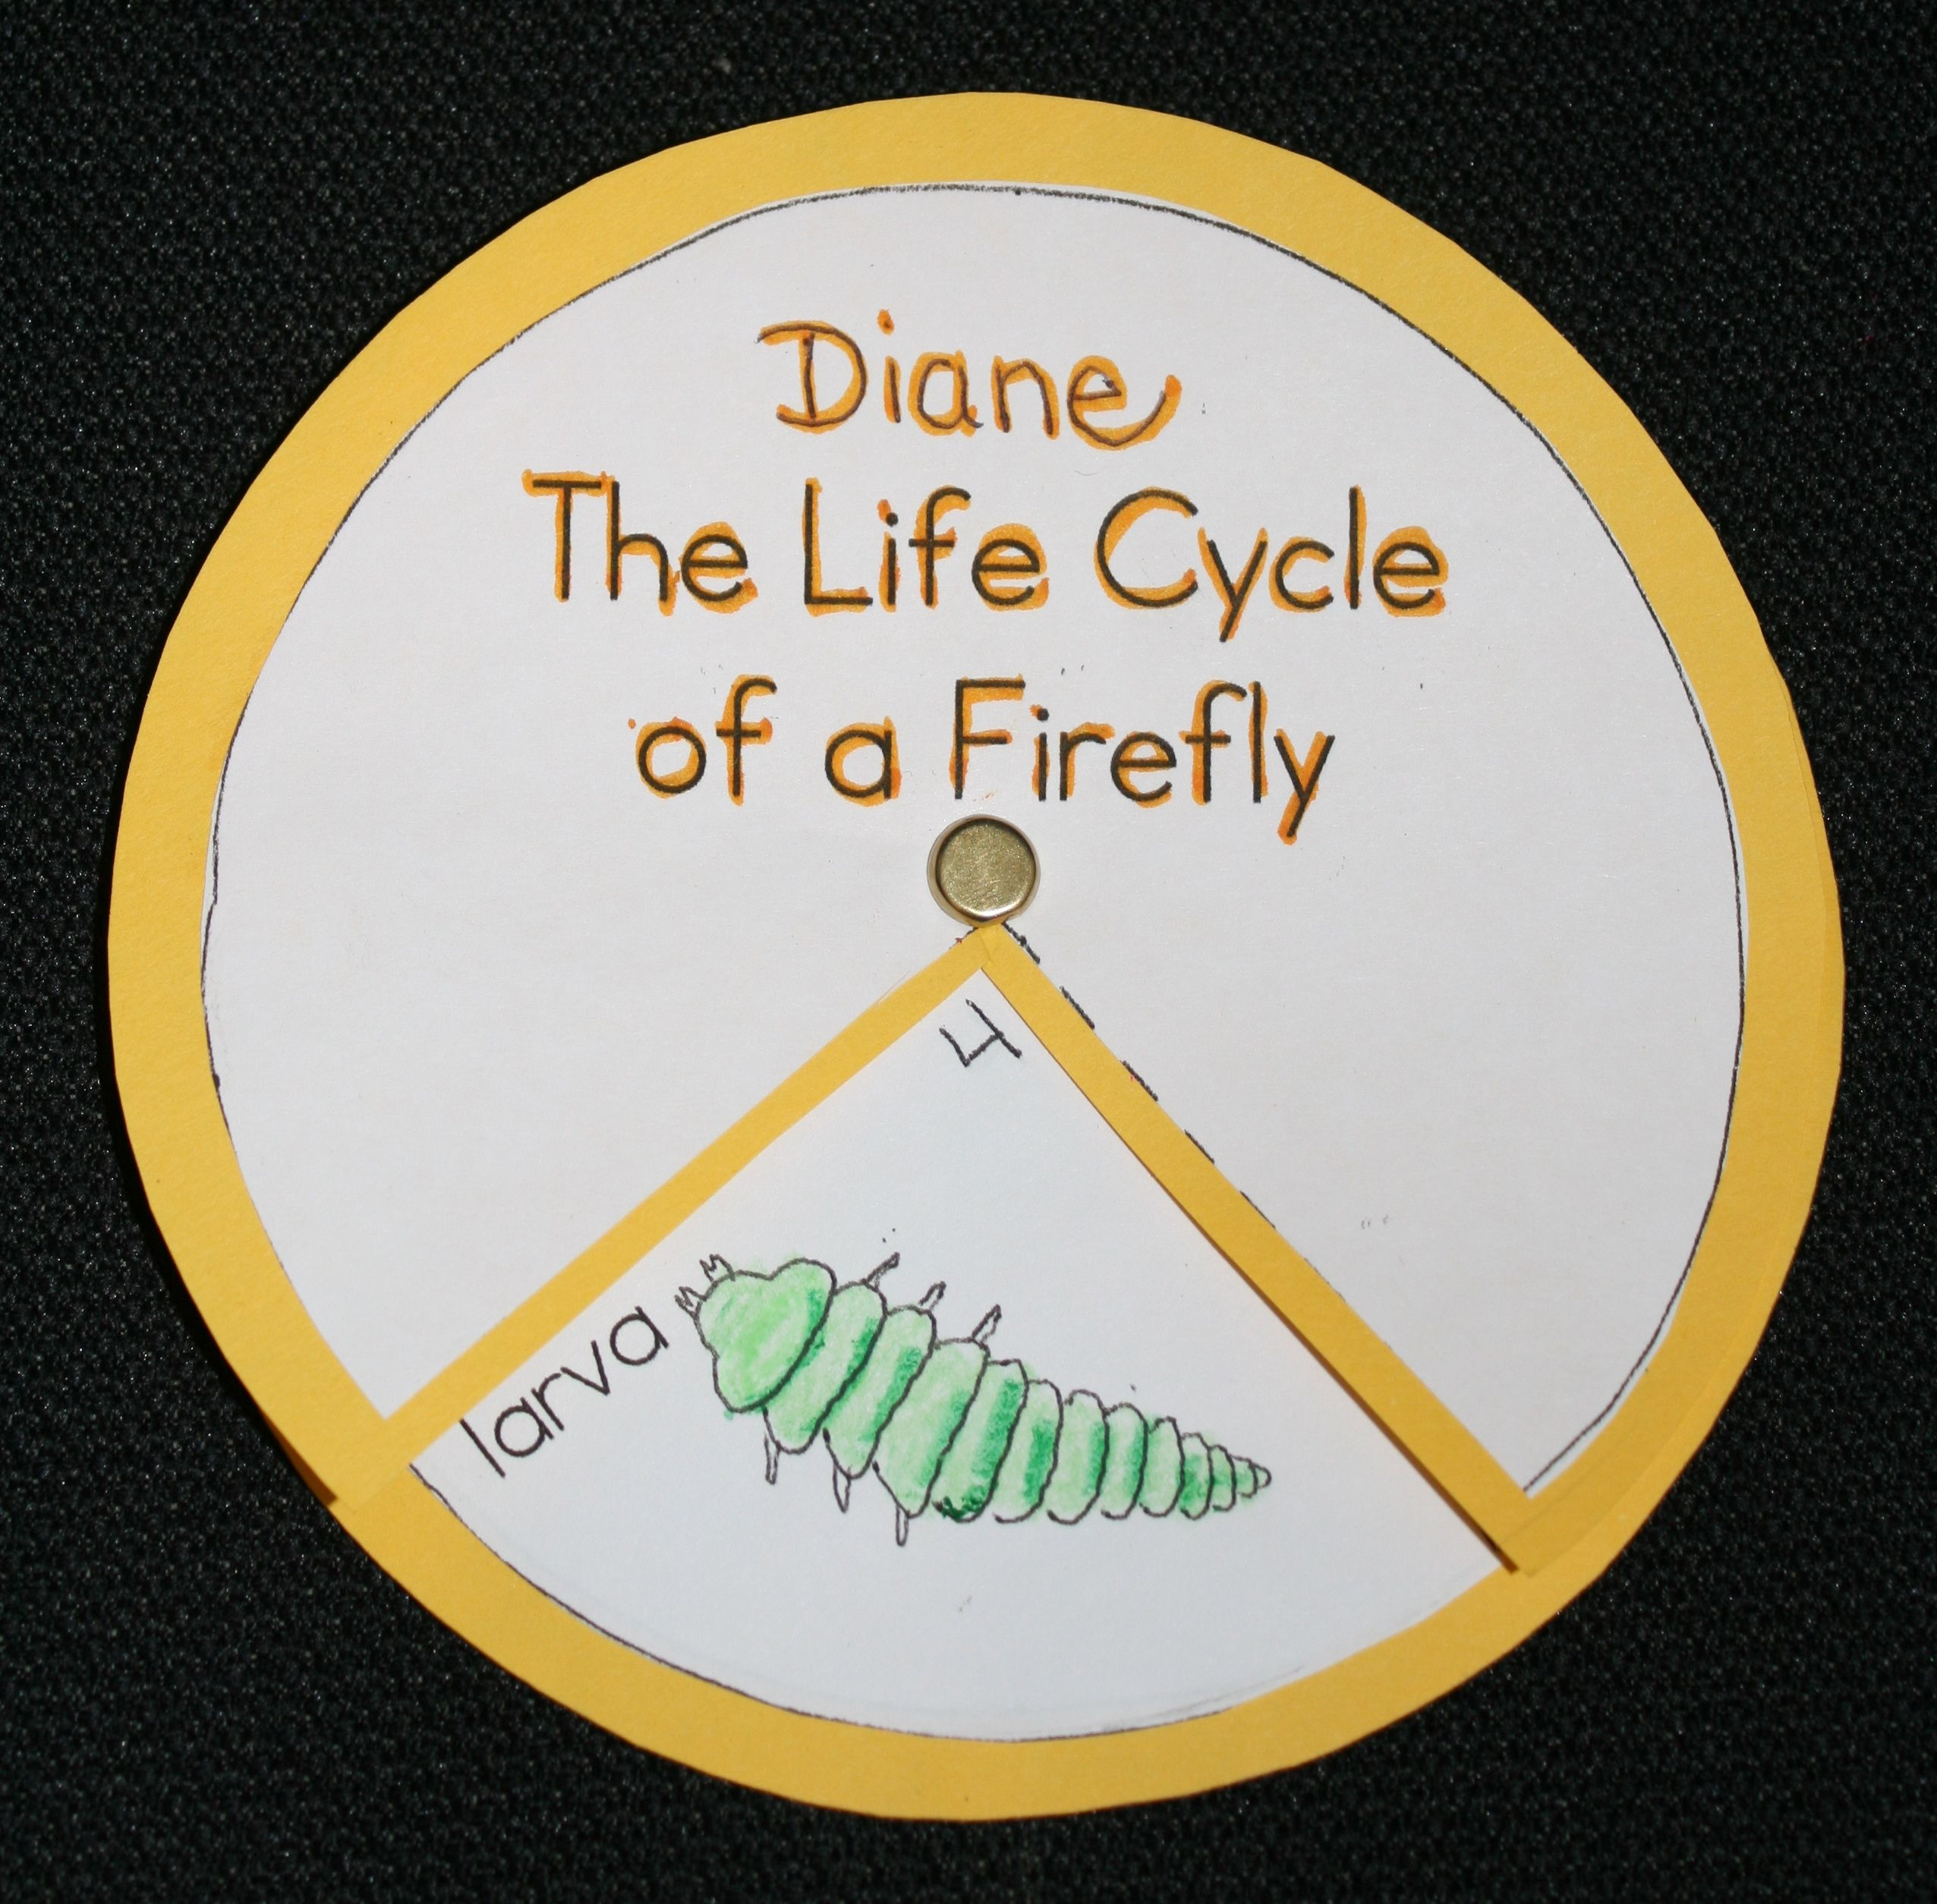 Life Cycle Of A Firefly Firefly Life Cycle Wheel Firefly